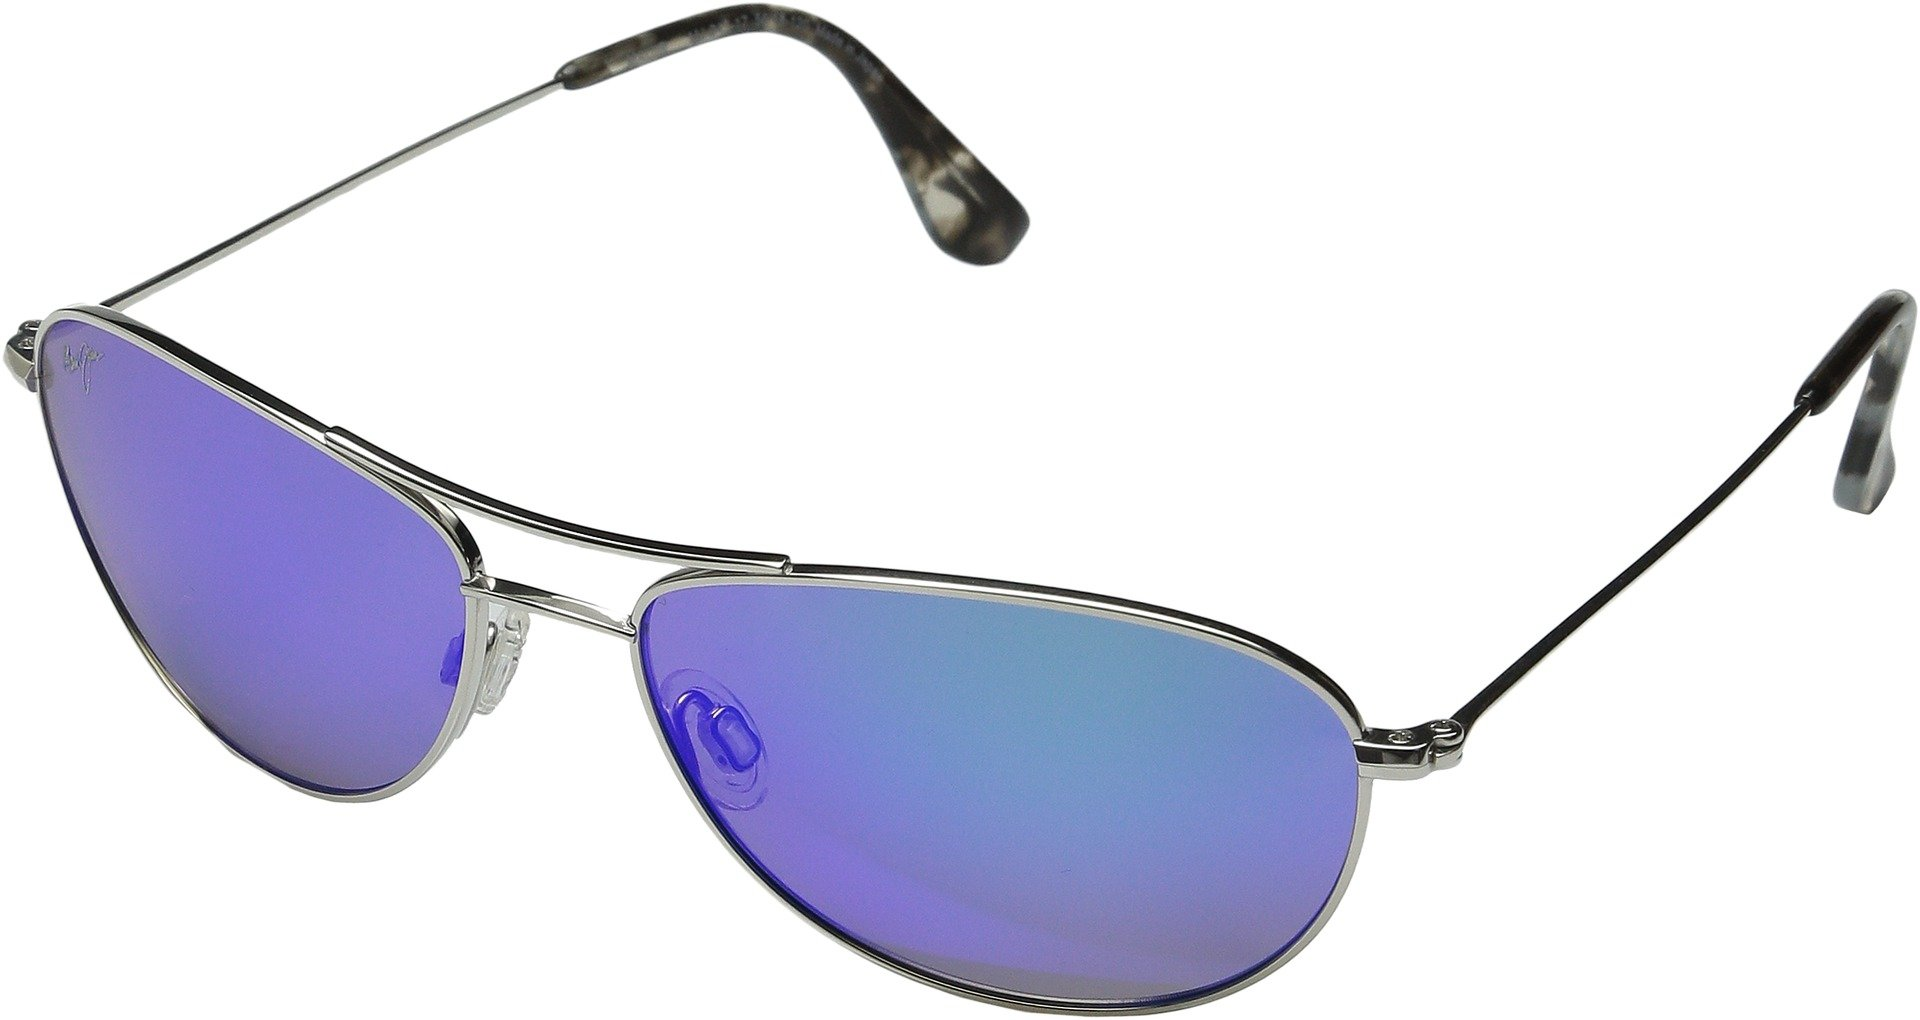 Maui Jim Baby Beach B245-17 | Sunglasses, Silver with Blue, with Patented PolarizedPlus2 Lens Technology